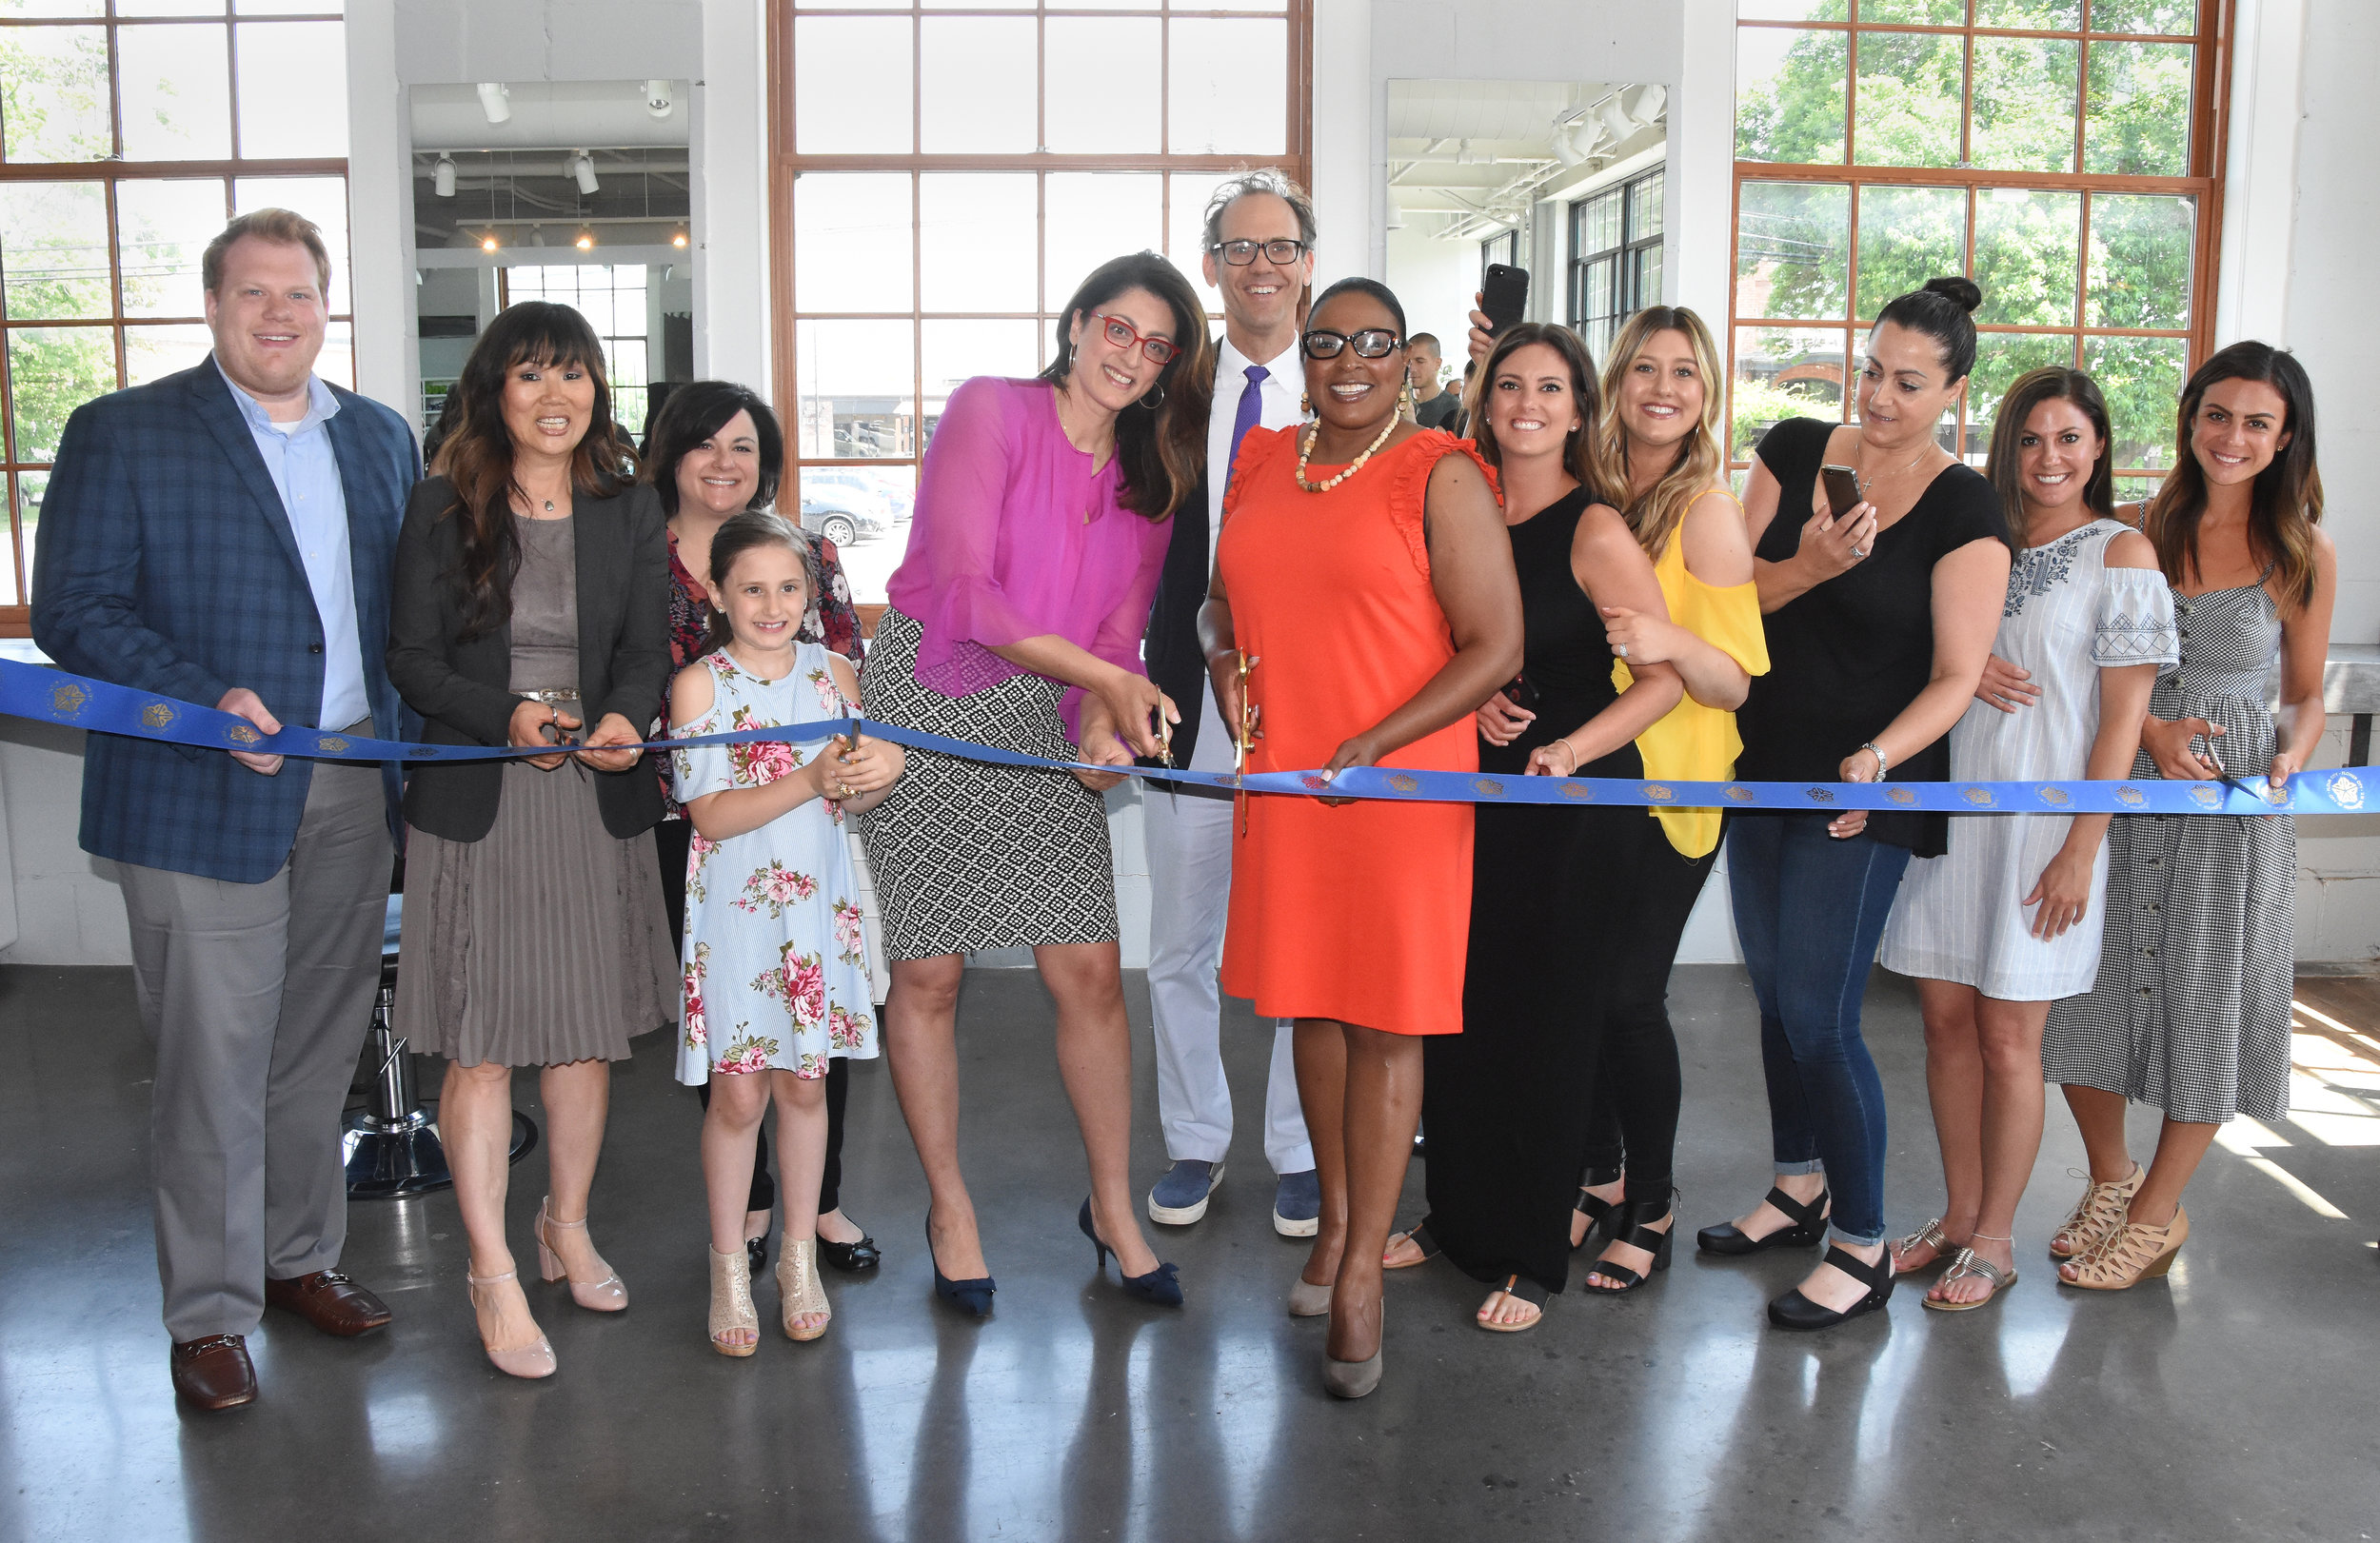 Metro Salon Ribbon Cutting Ceremony.